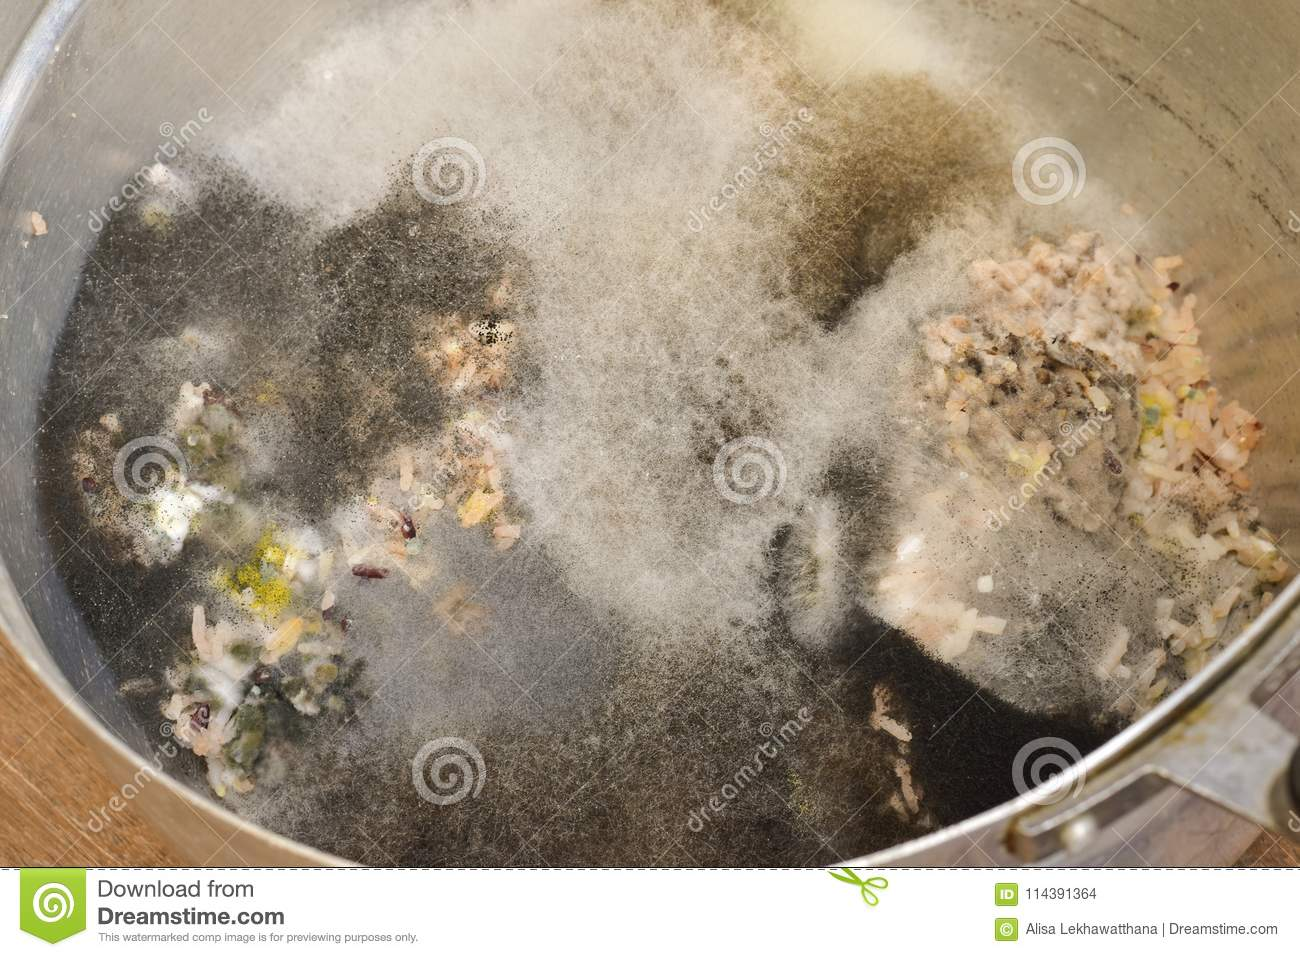 Aspergillus mold on food. Texture of toxic mold with black, whit